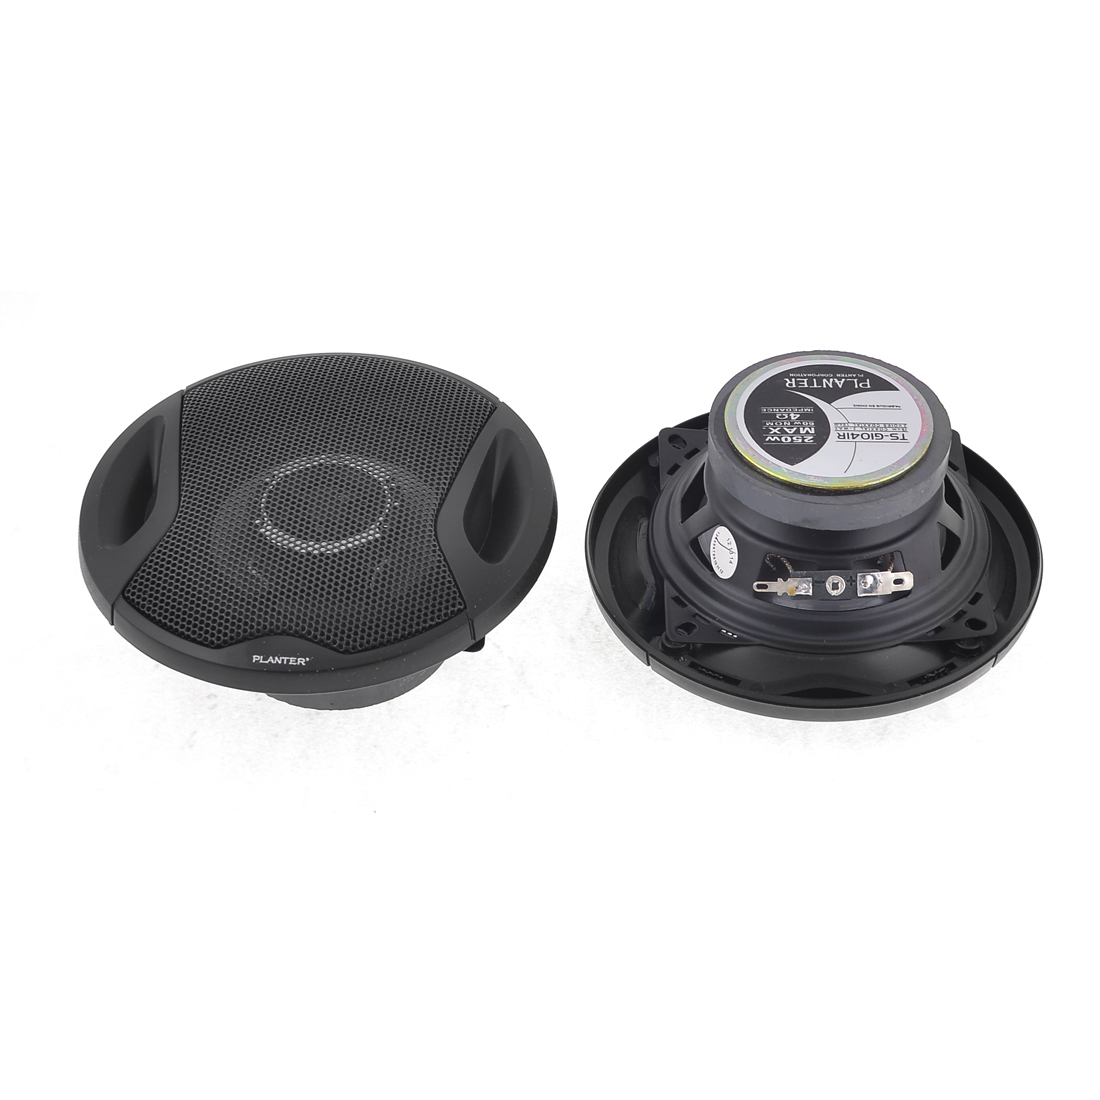 2 Pcs Black Auto Car Audio System 10cm Dia 2-Way Coaxial Speaker 250W Max.